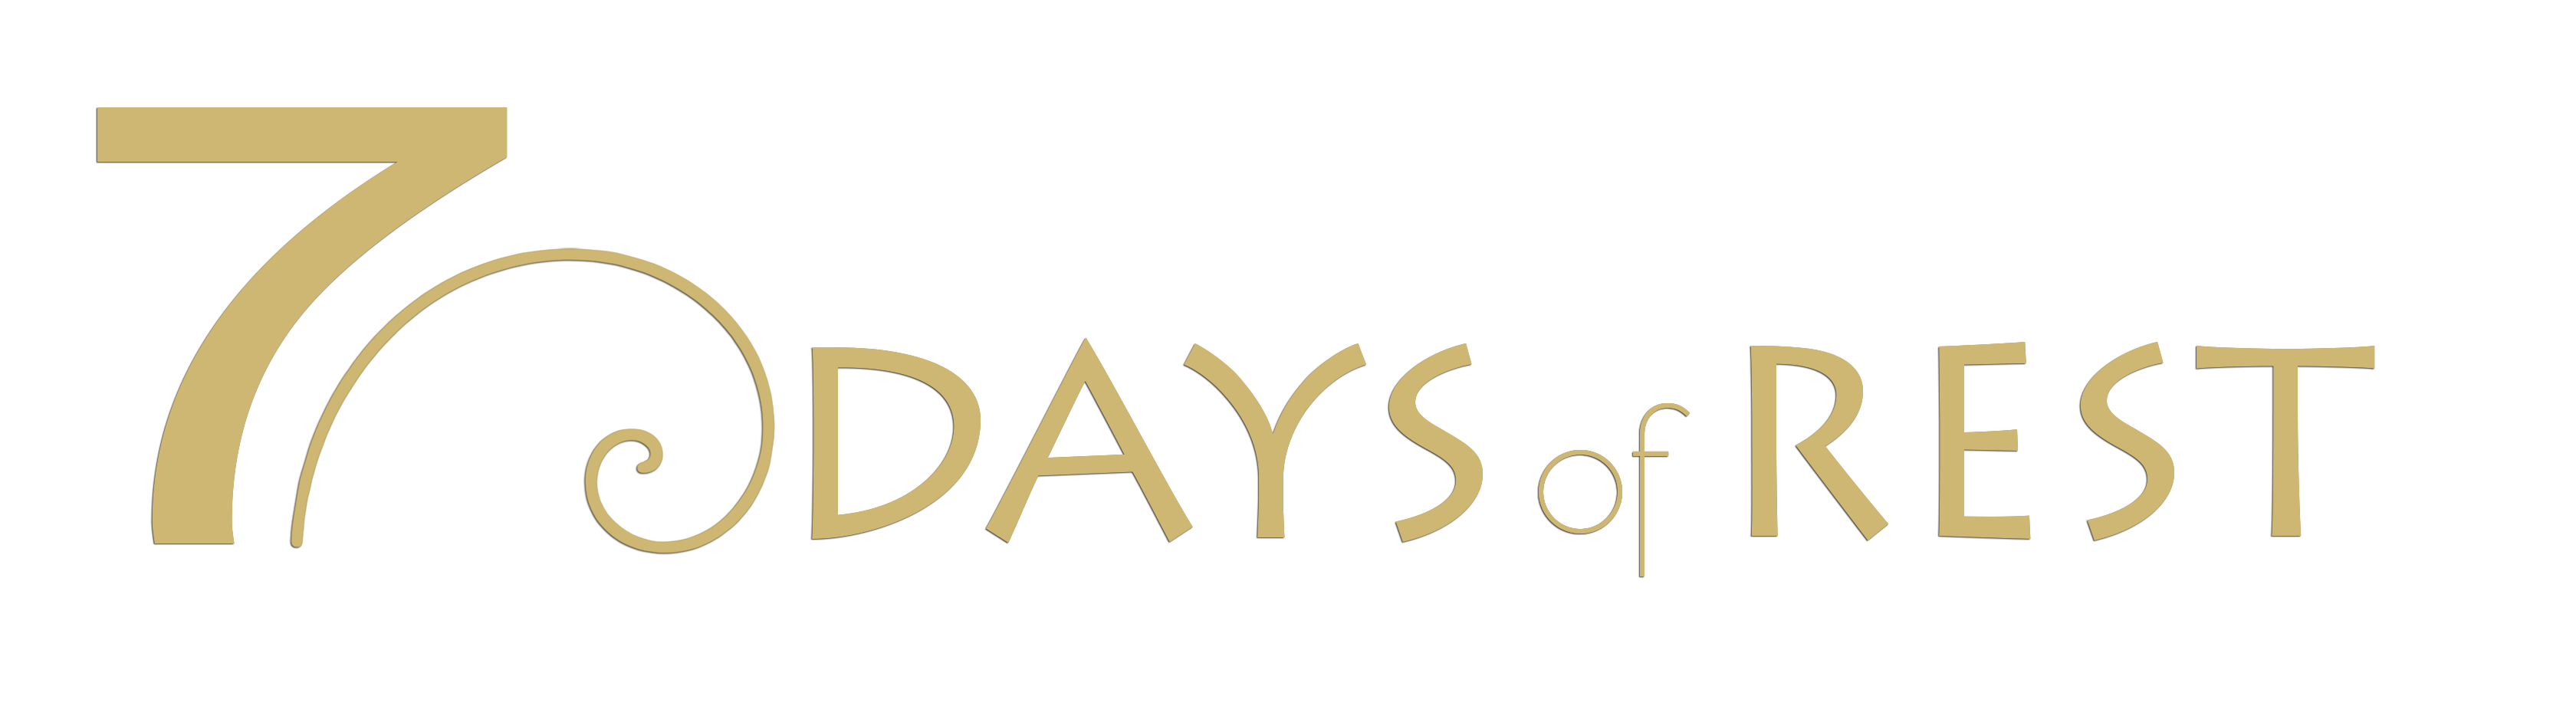 7_DAYS_OF_REST_FINAL_LOGO.png